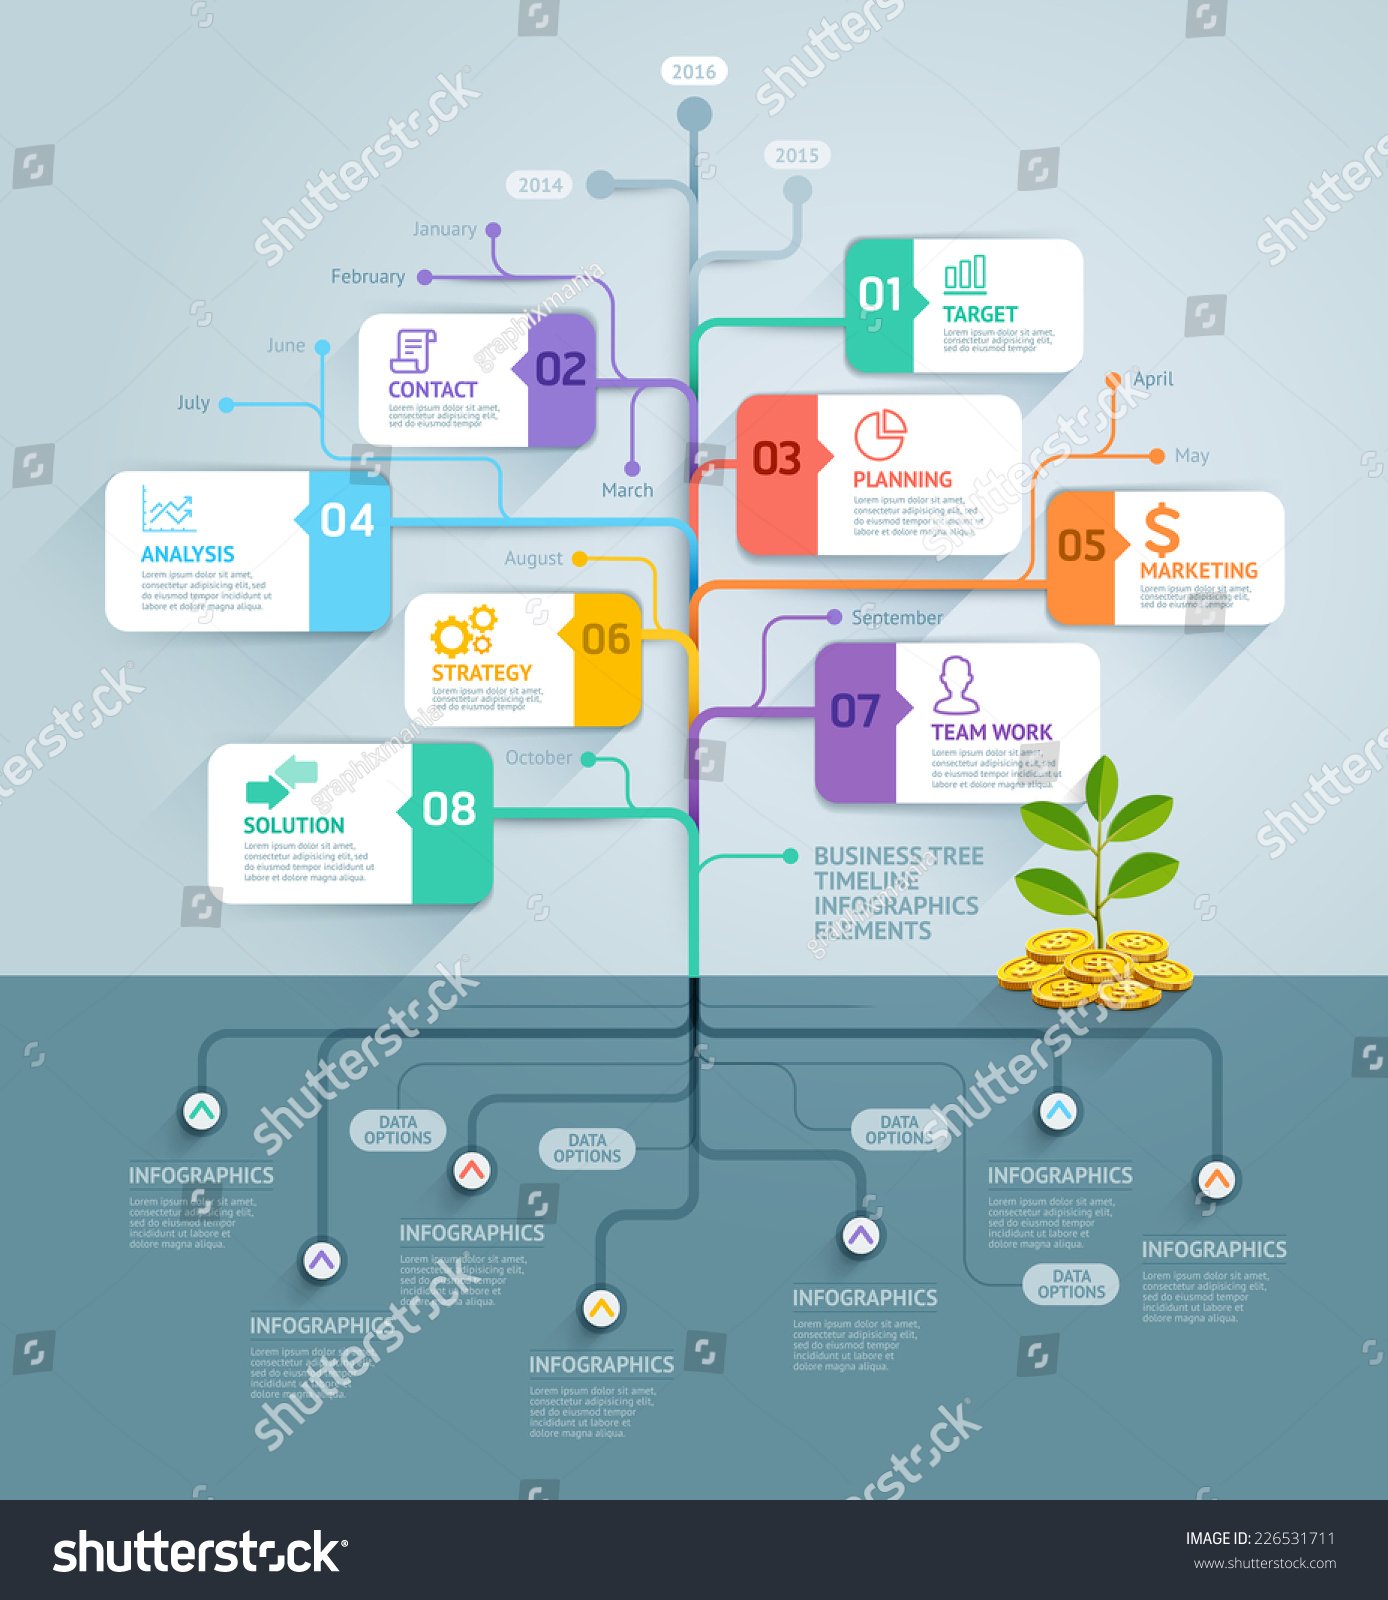 business tree timeline infographics vector illustration のベクター